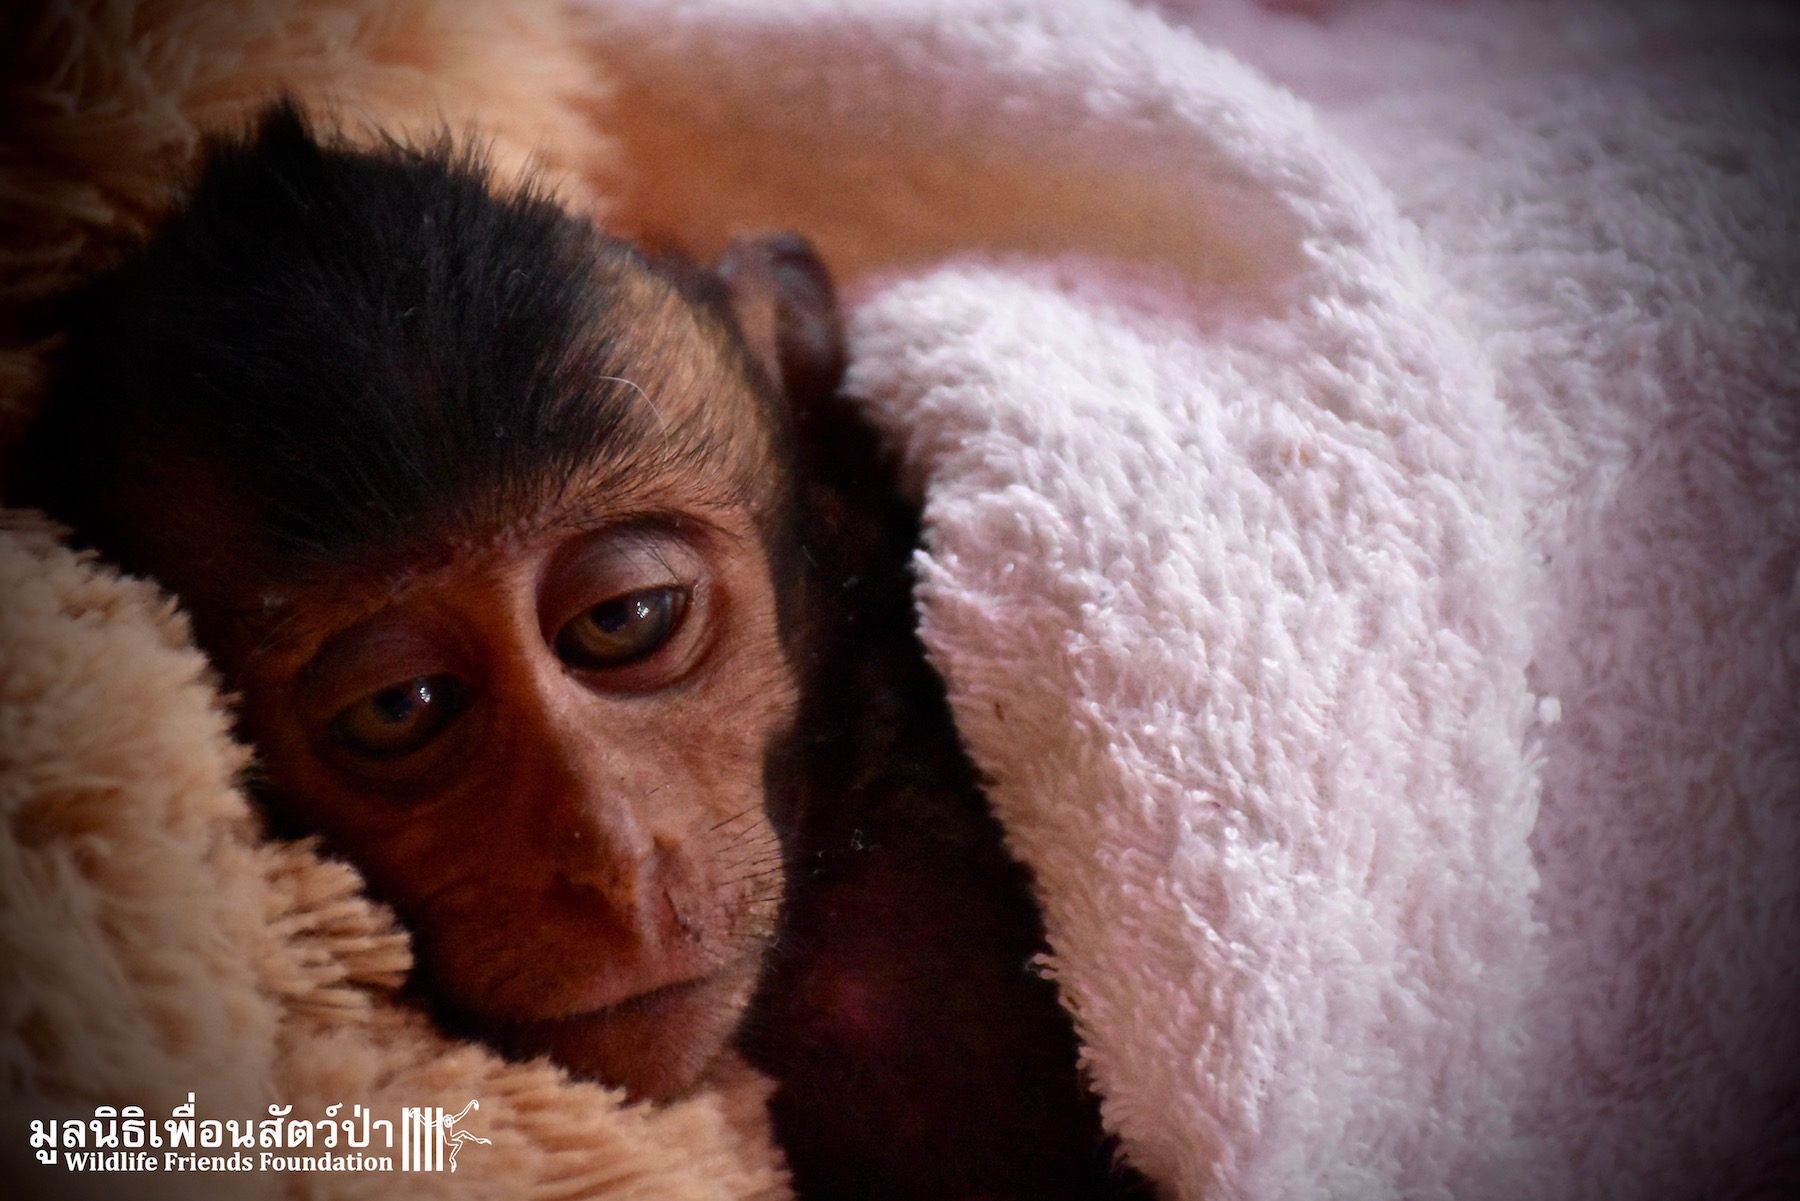 Injured Infant Macaque 'Hope' In A Critical Condition